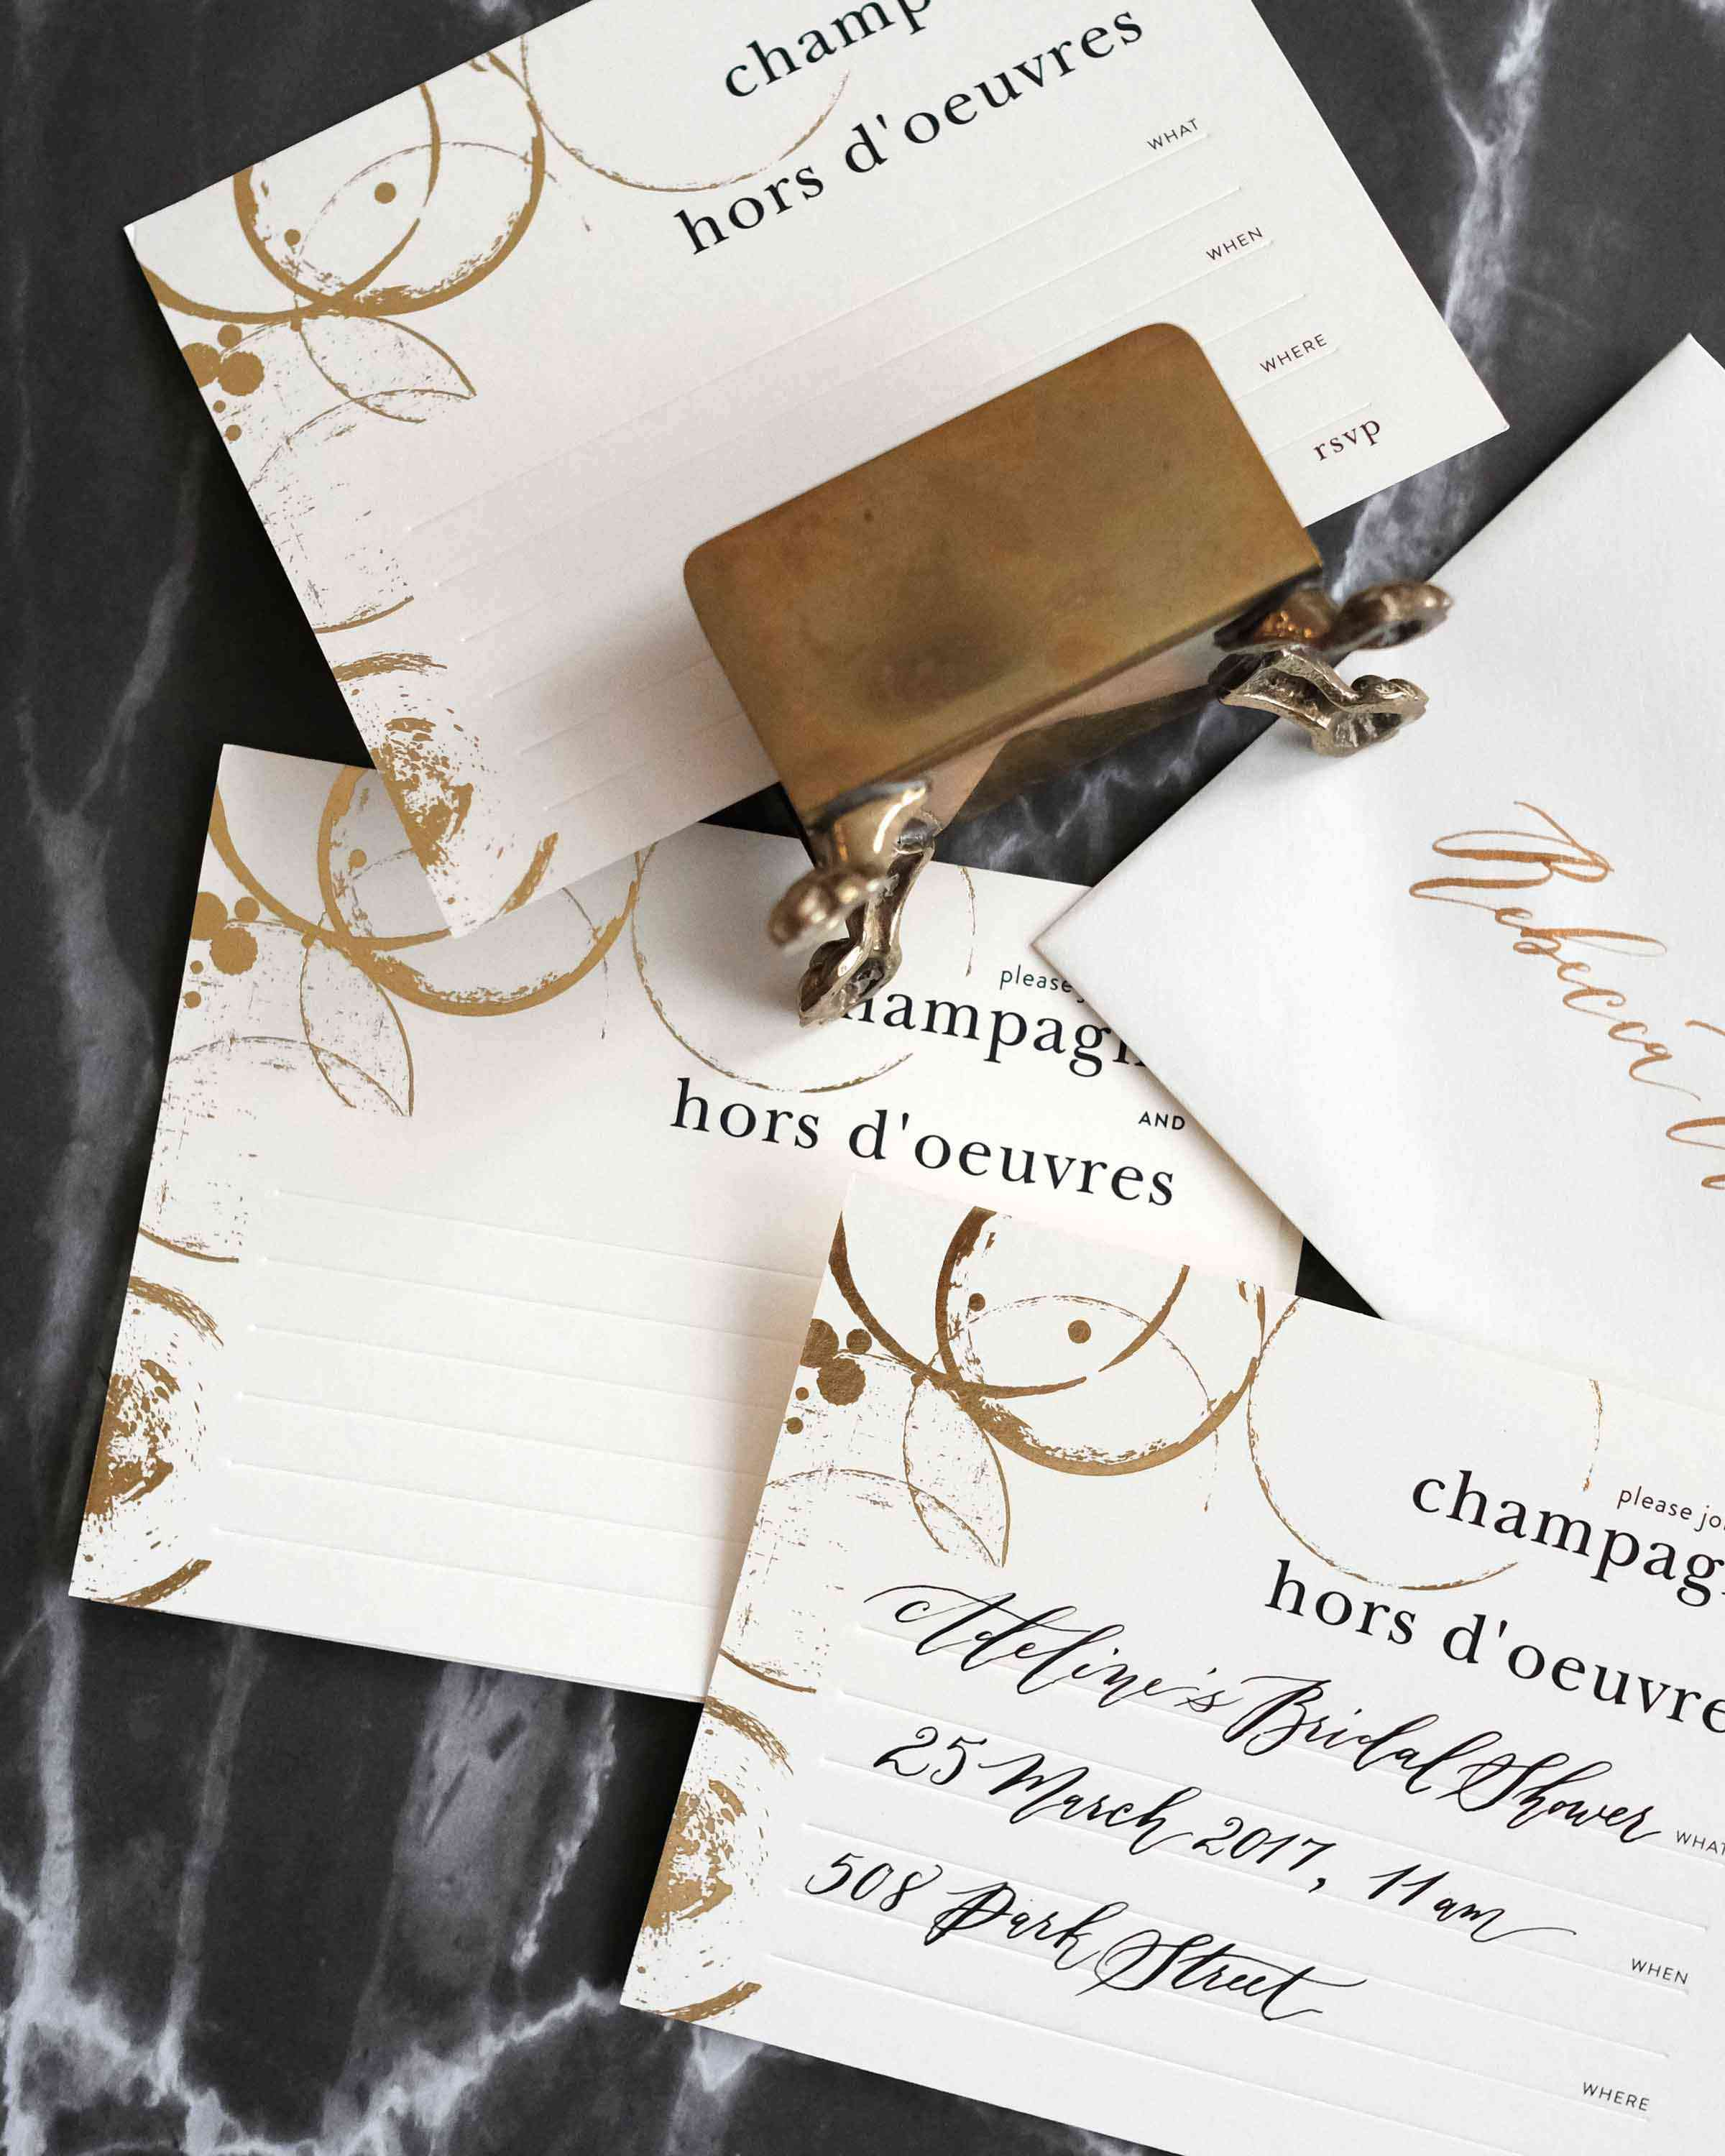 Champagne & Hors D'oeuvres Invitations